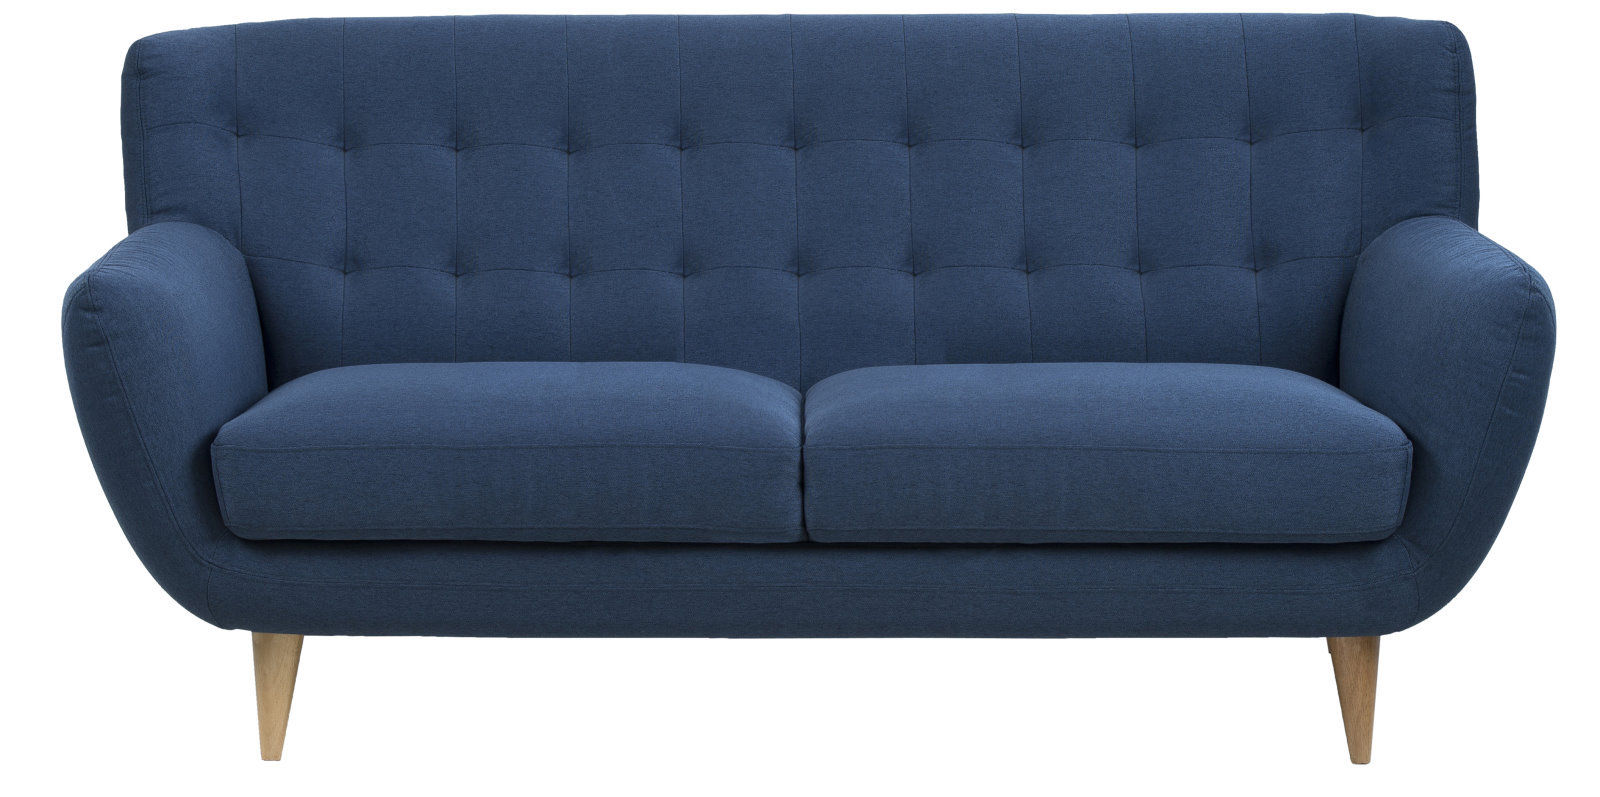 pkline sofa in dunkelblau 3 sitzer couch dreisitzer polster m bel 5705994823783 ebay. Black Bedroom Furniture Sets. Home Design Ideas